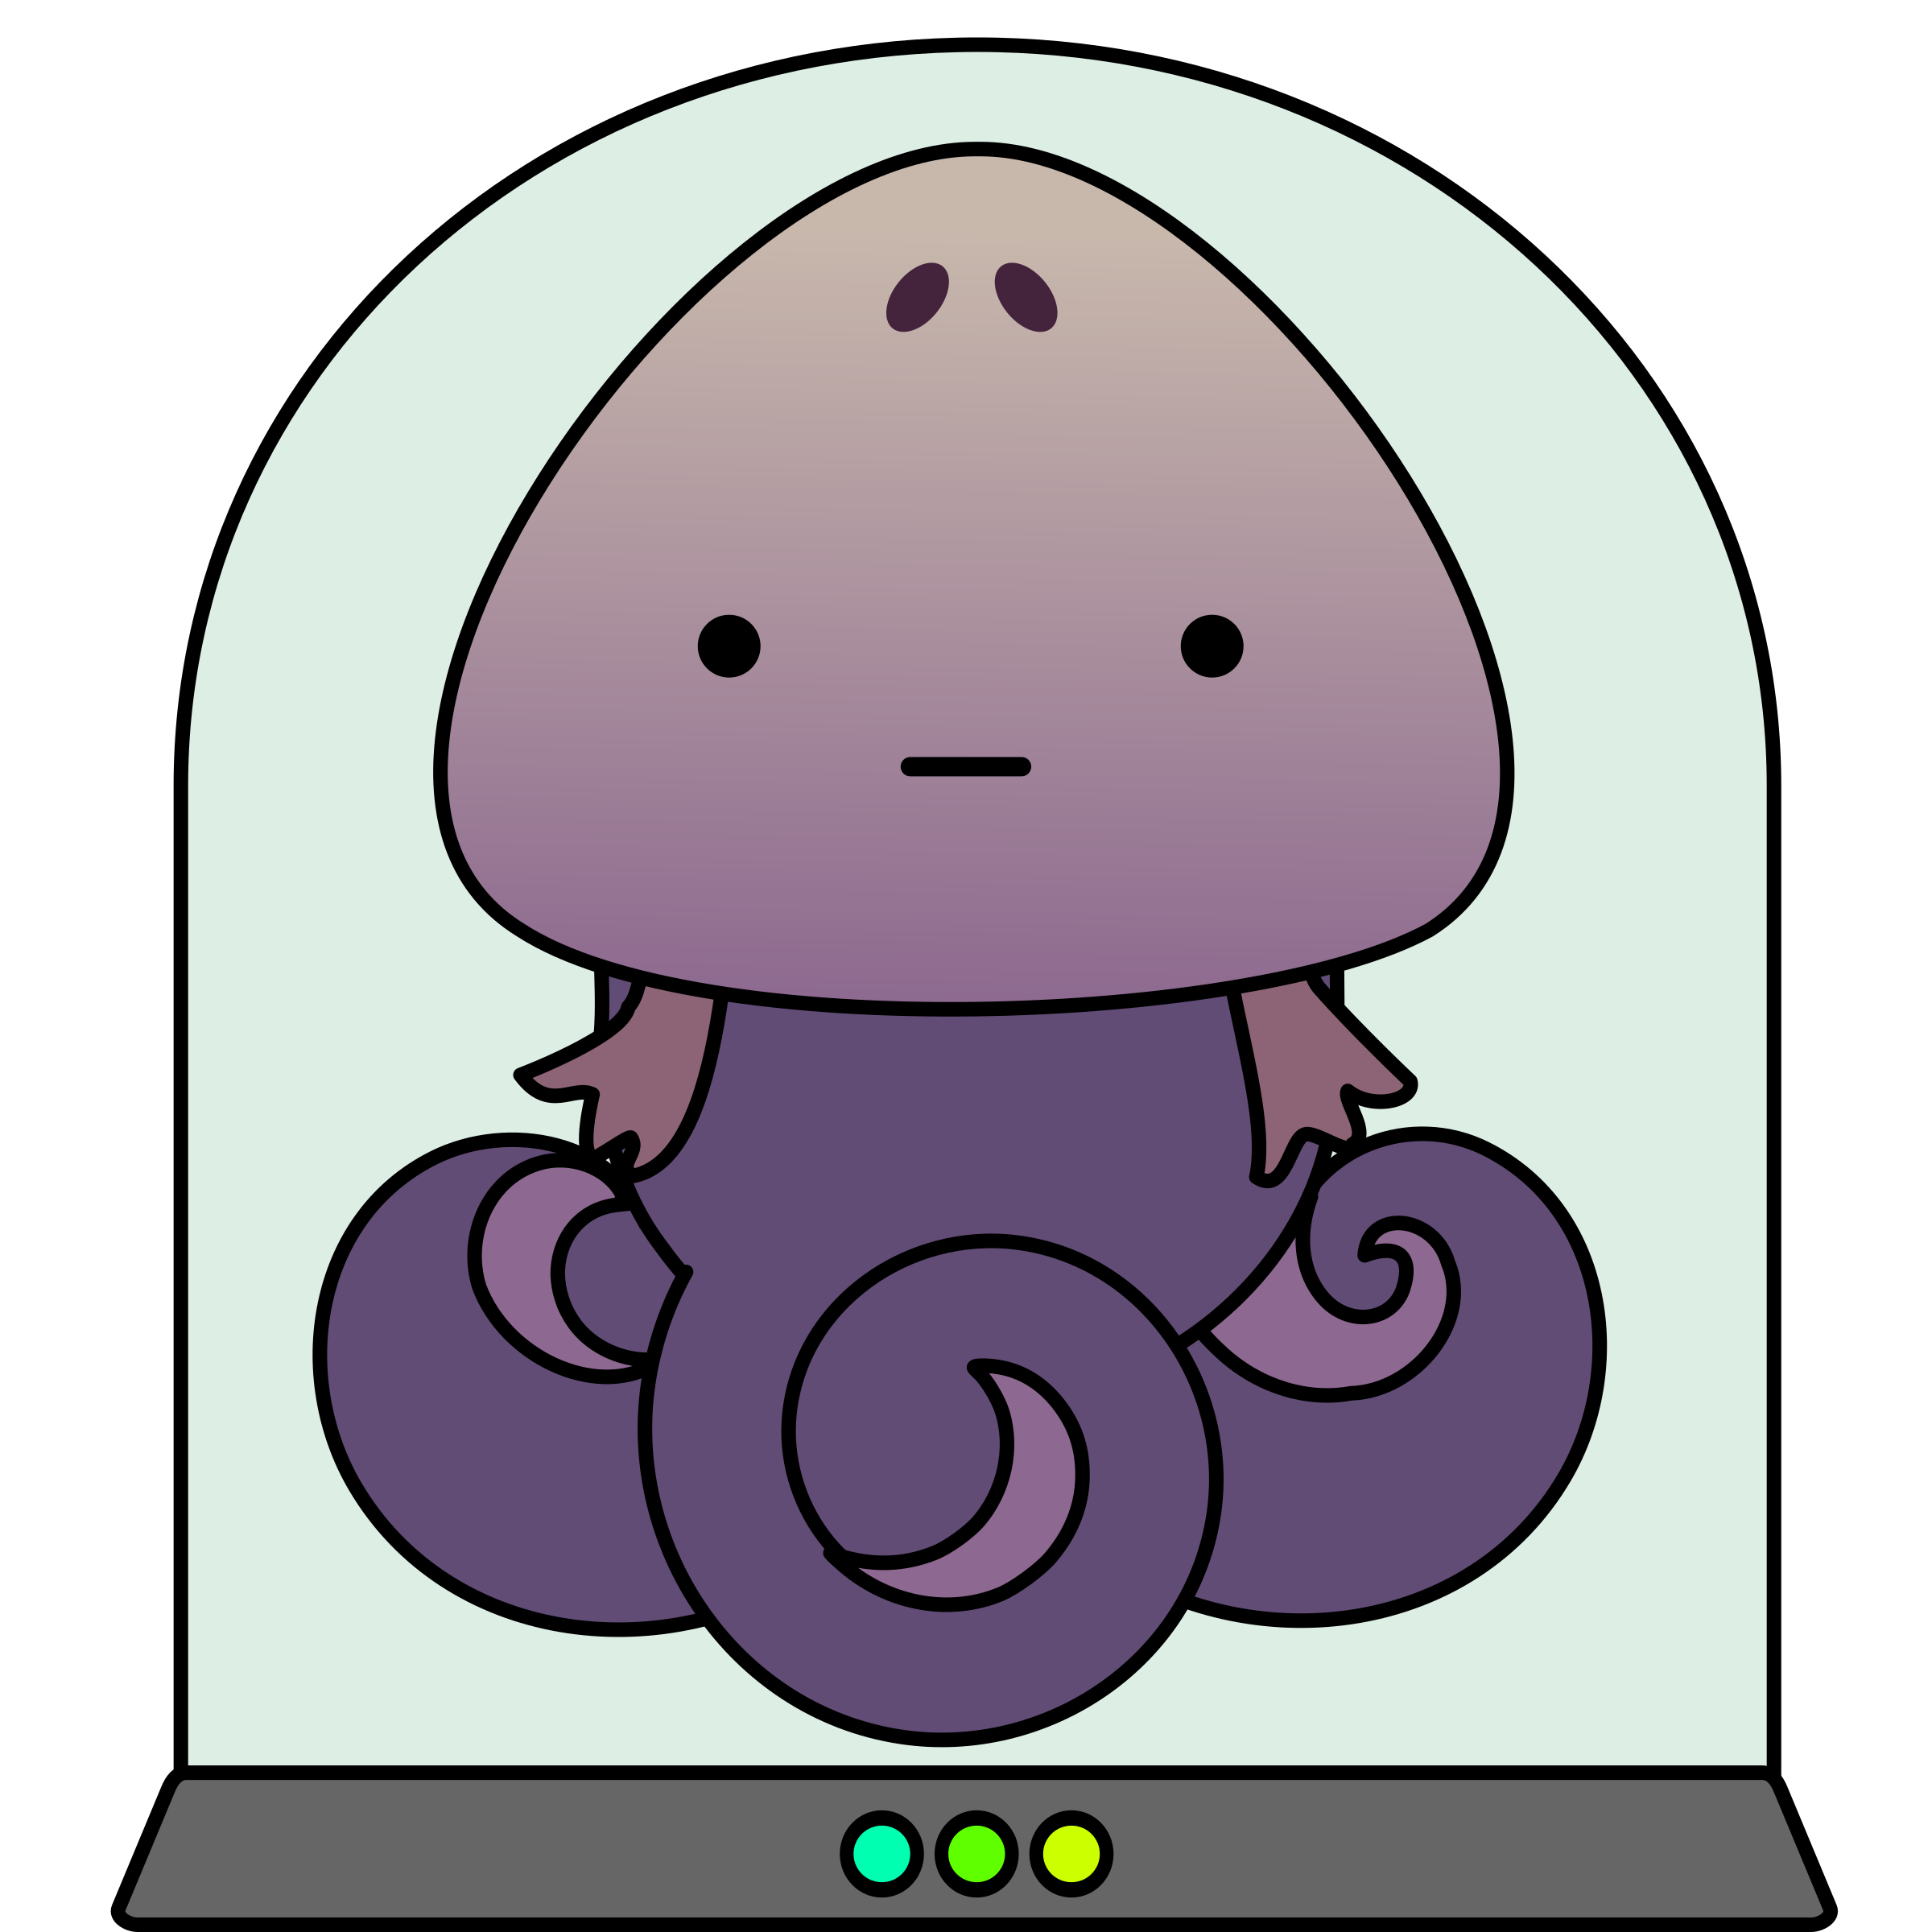 Purple clipart squid. Cute alien monster in